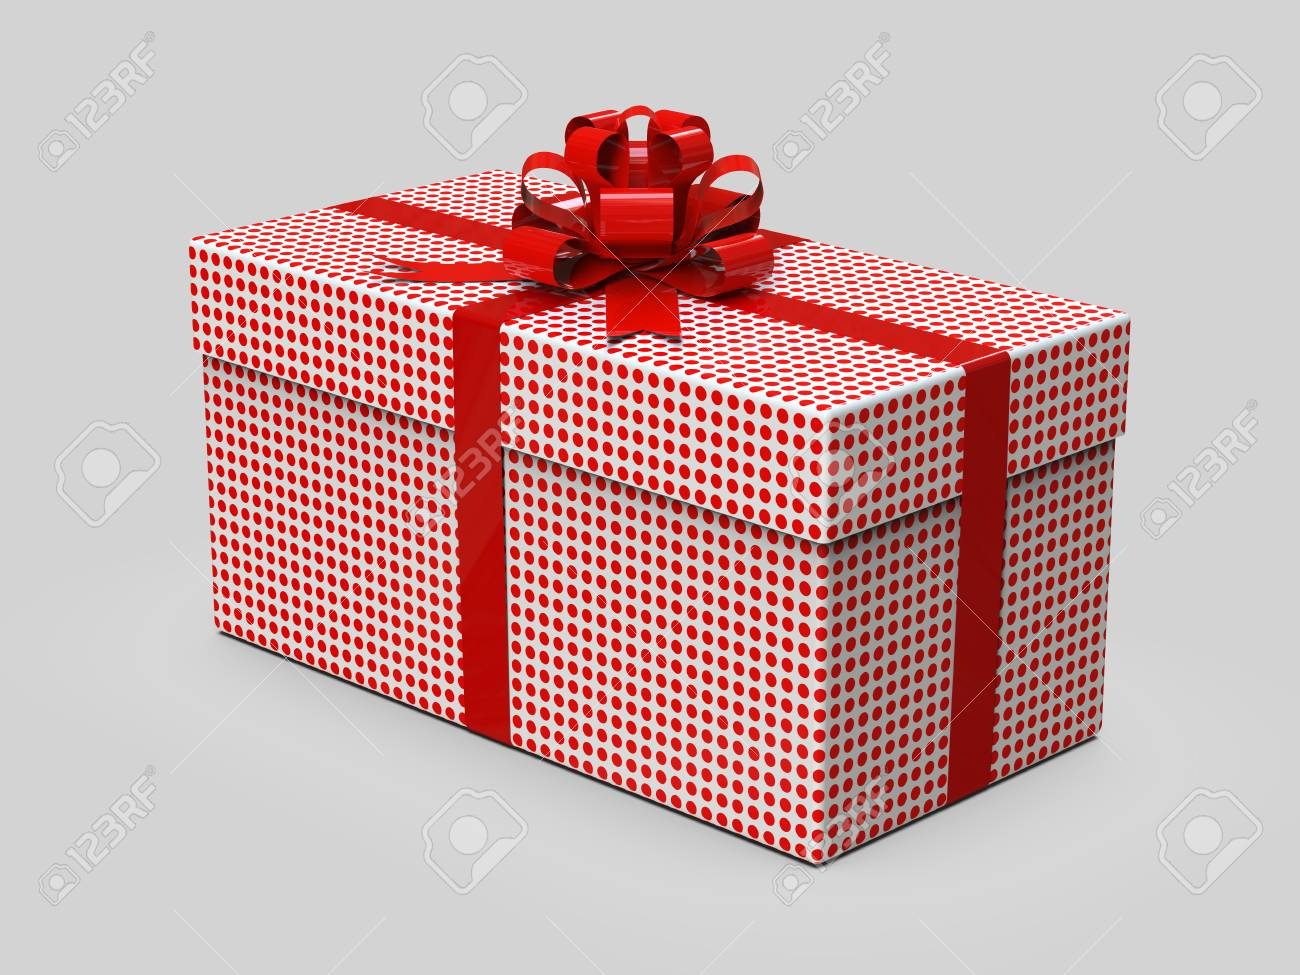 Gift box with bow isolane on white background. Stylish wrapper. 3D illustration Stock Illustration & Gift Box With Bow Isolane On White Background. Stylish Wrapper ...